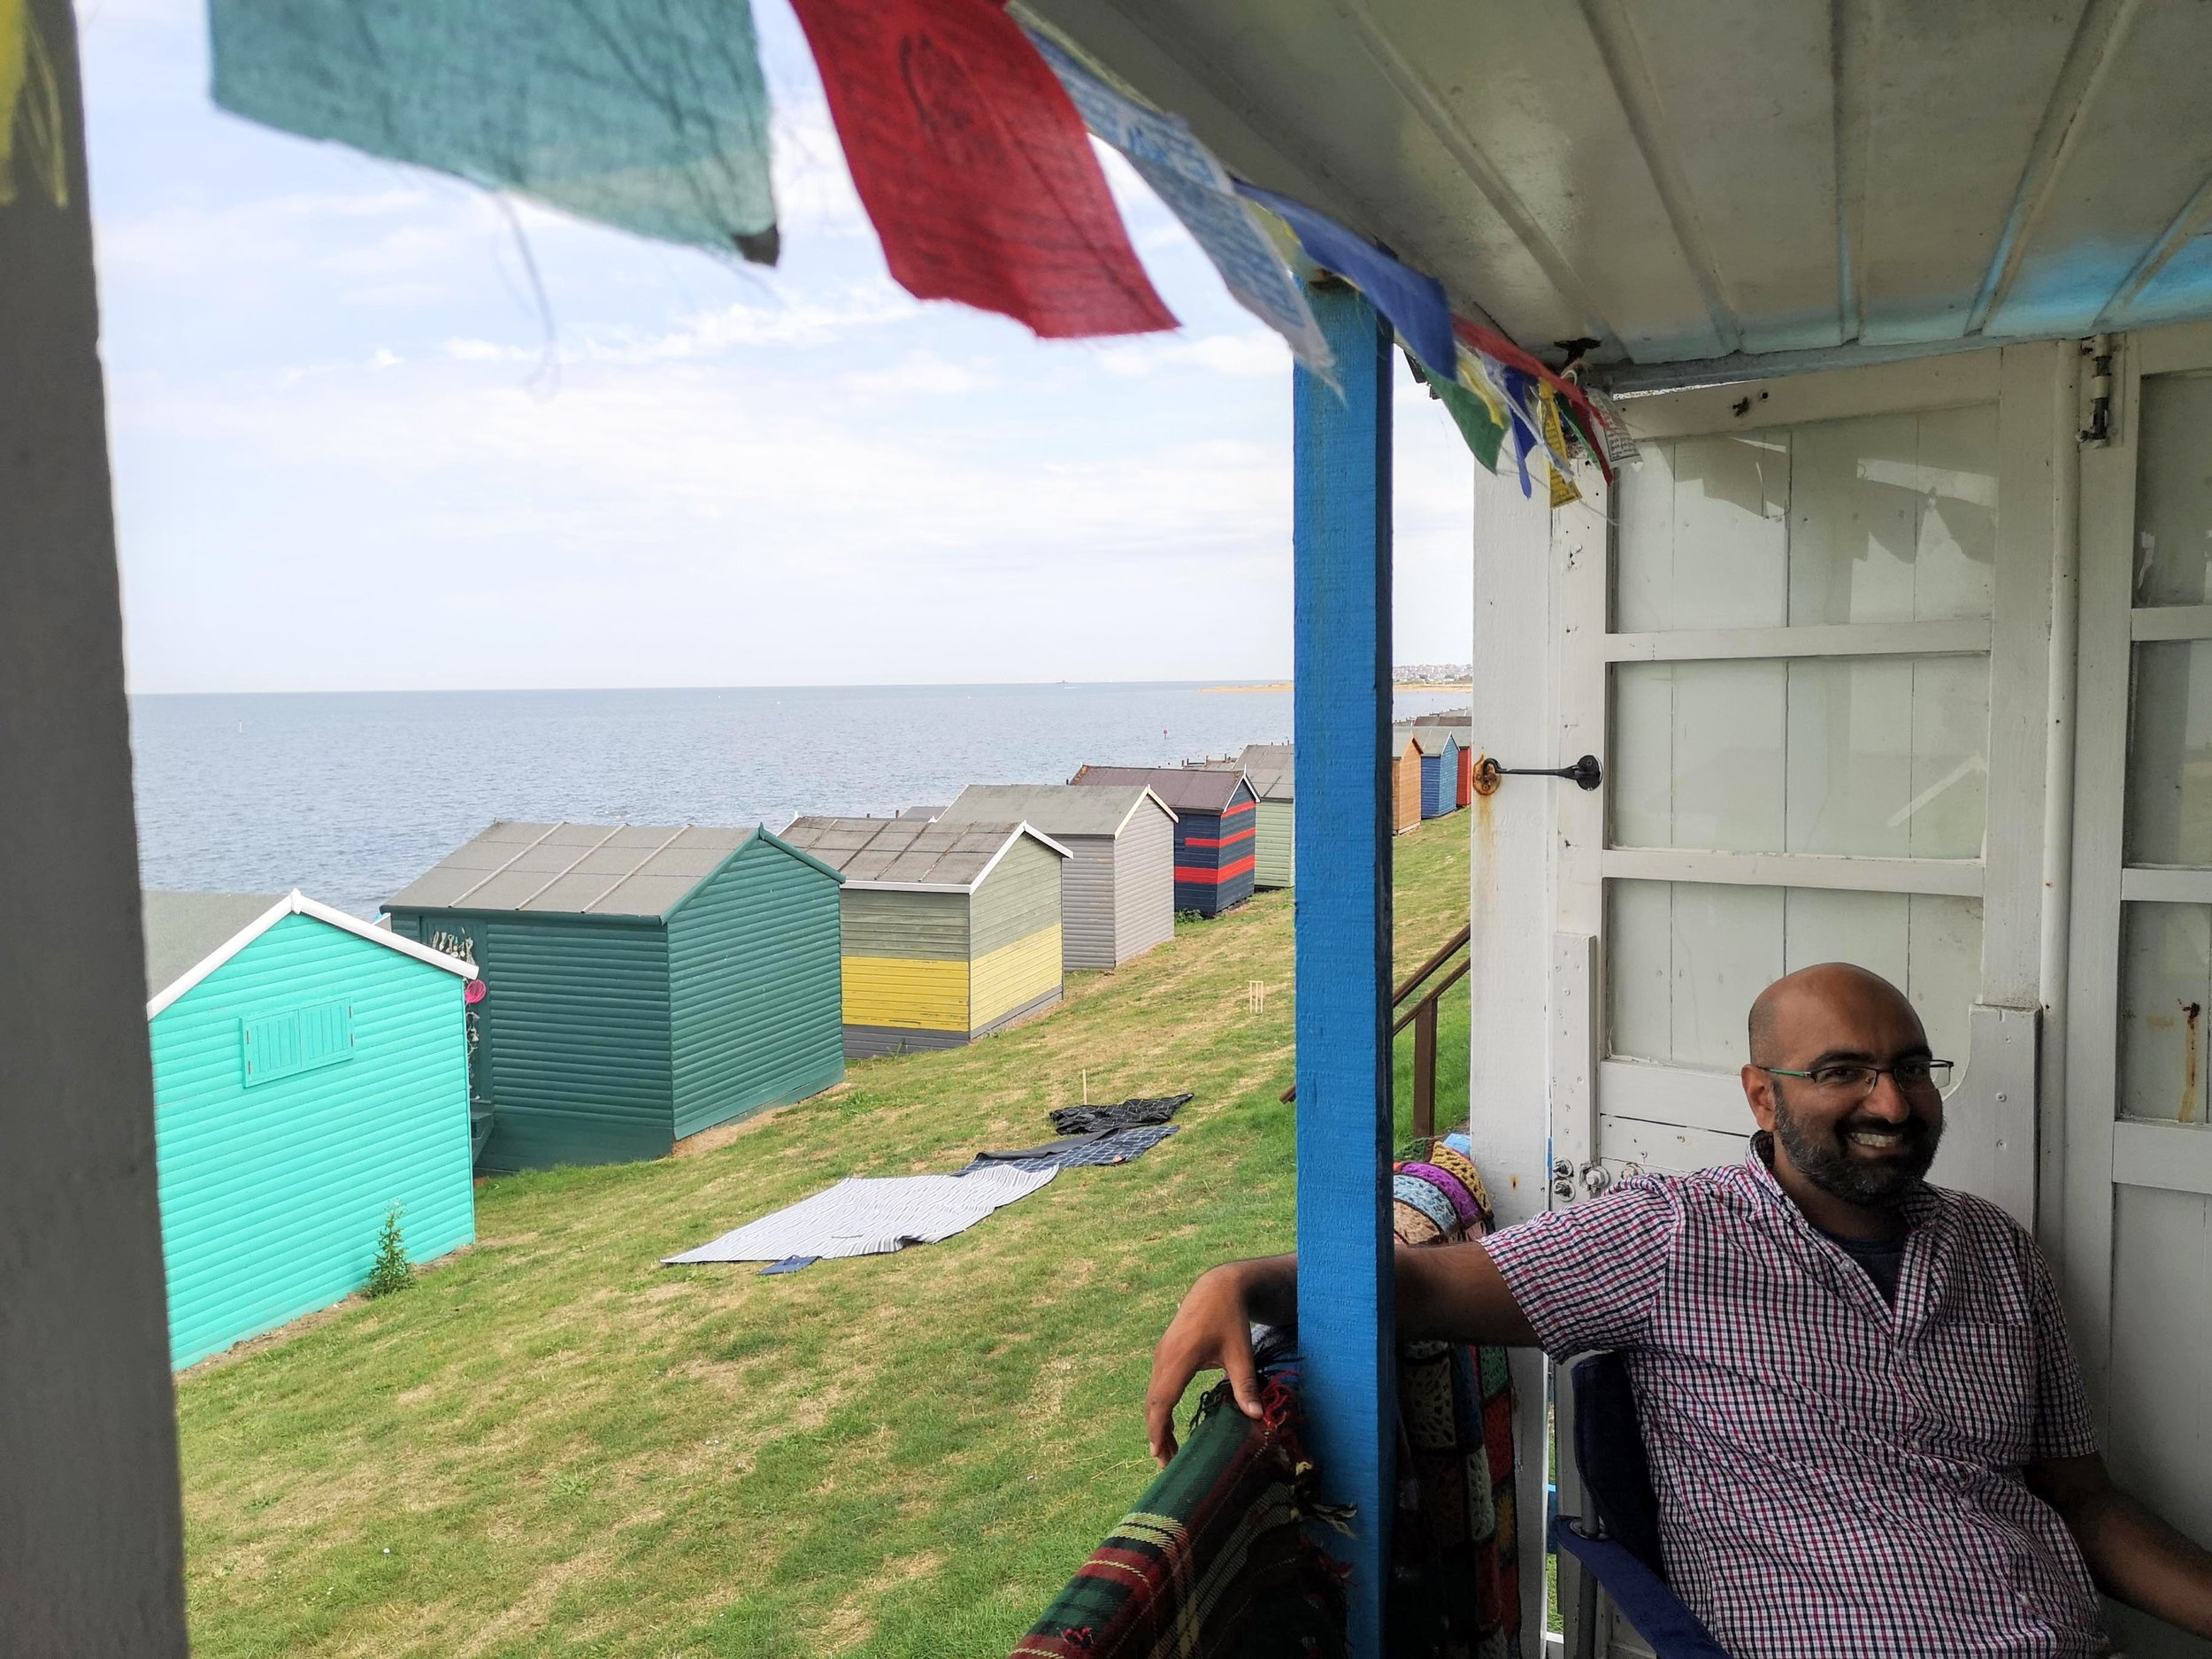 My recent visit to my friend's beach hut in Whitstable, UK this summer to celebrate my birthday!